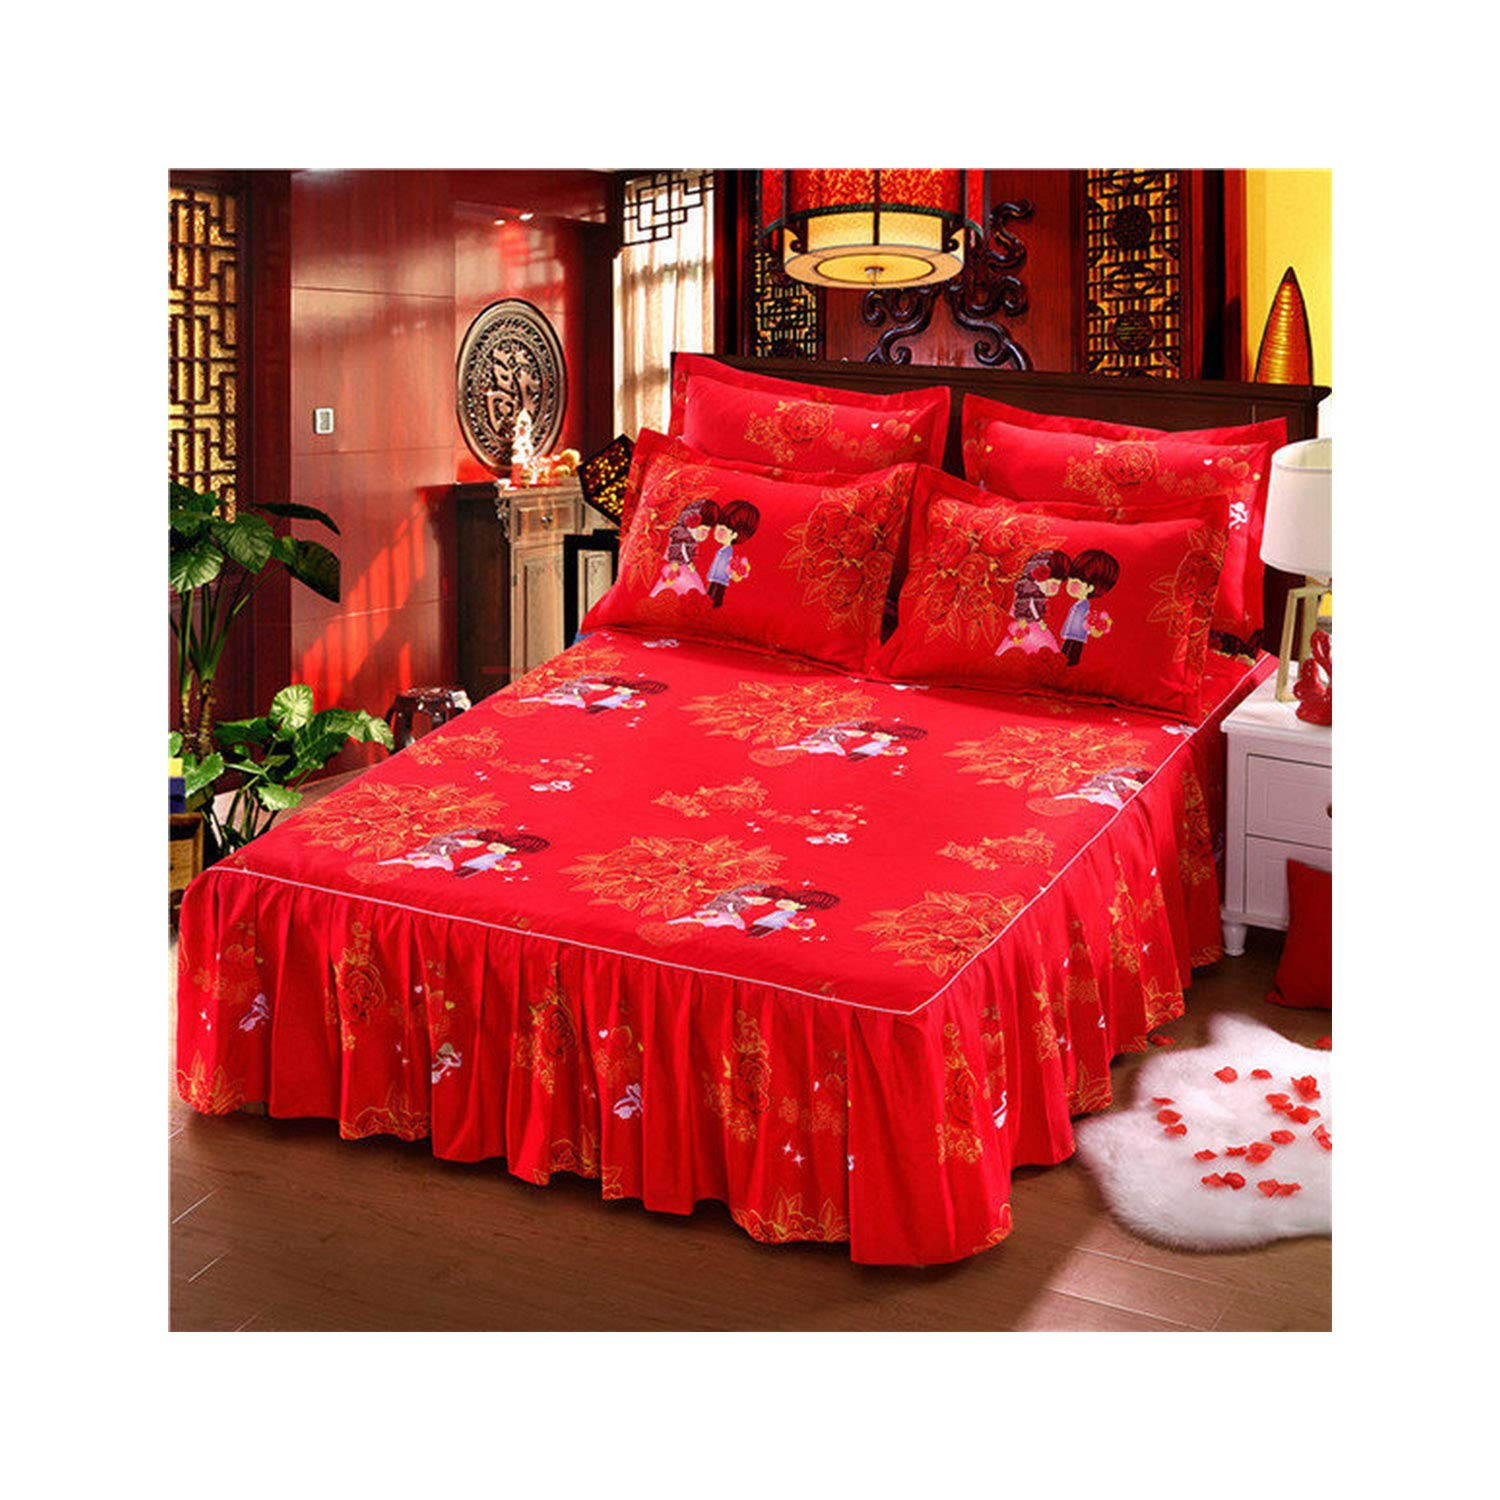 Classic Single Layer Bed Skirt Bedding Sets Non Slip Sheet Cover Bed Sheet Room Decor Flower Printing Bedspread Pillowcase 3Pcs,1,120X200Cm